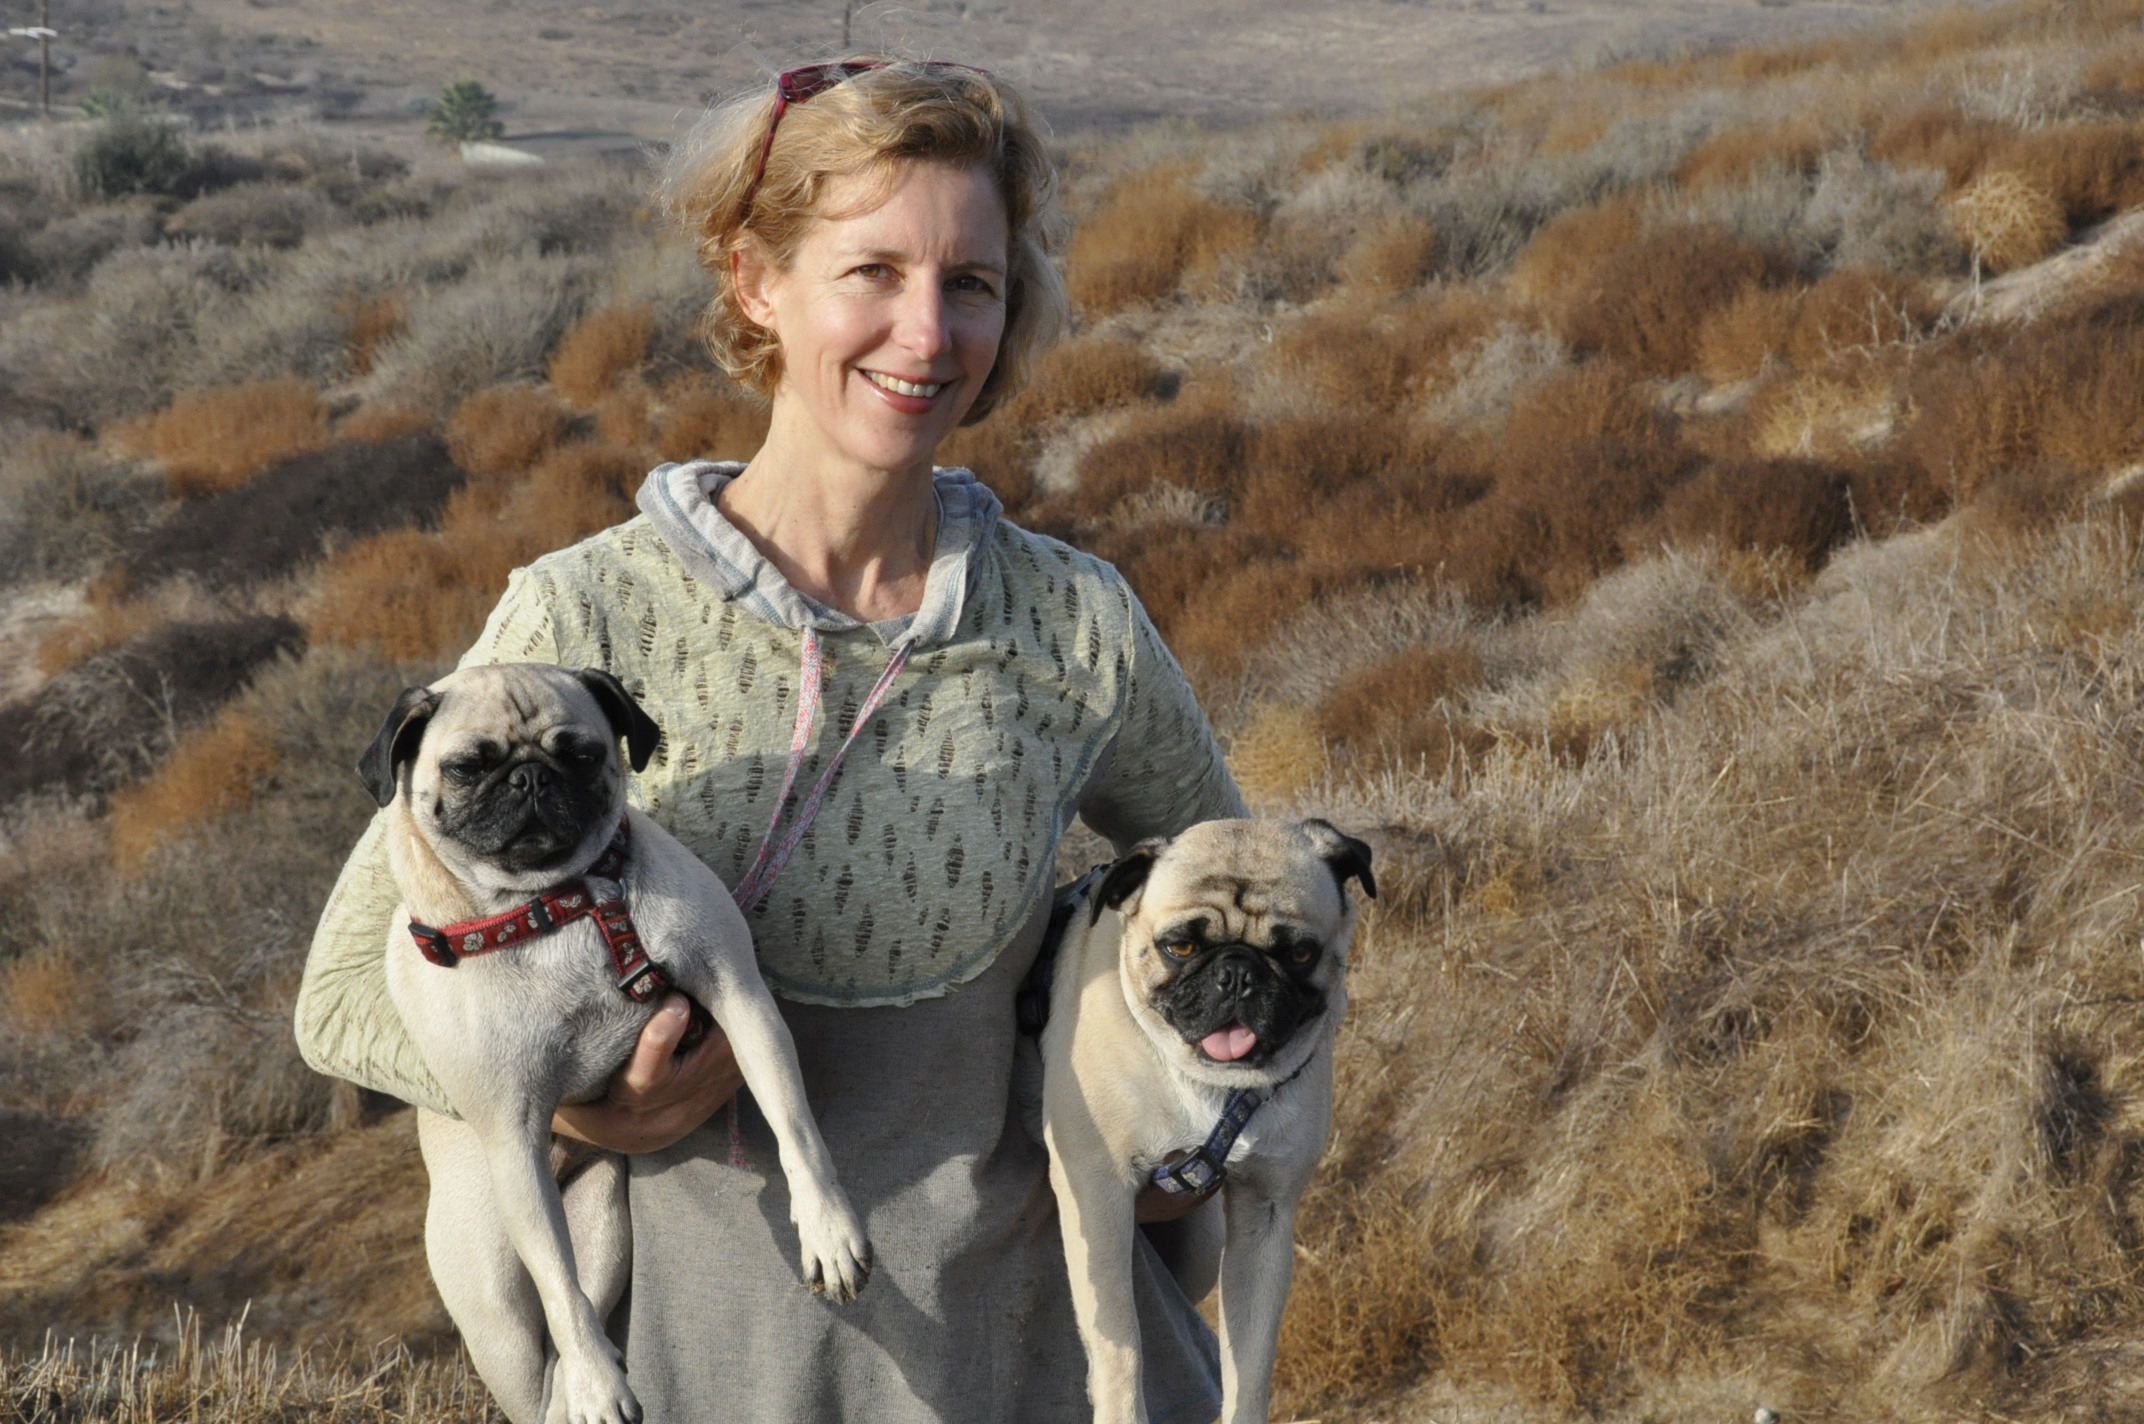 Beate with Pugs